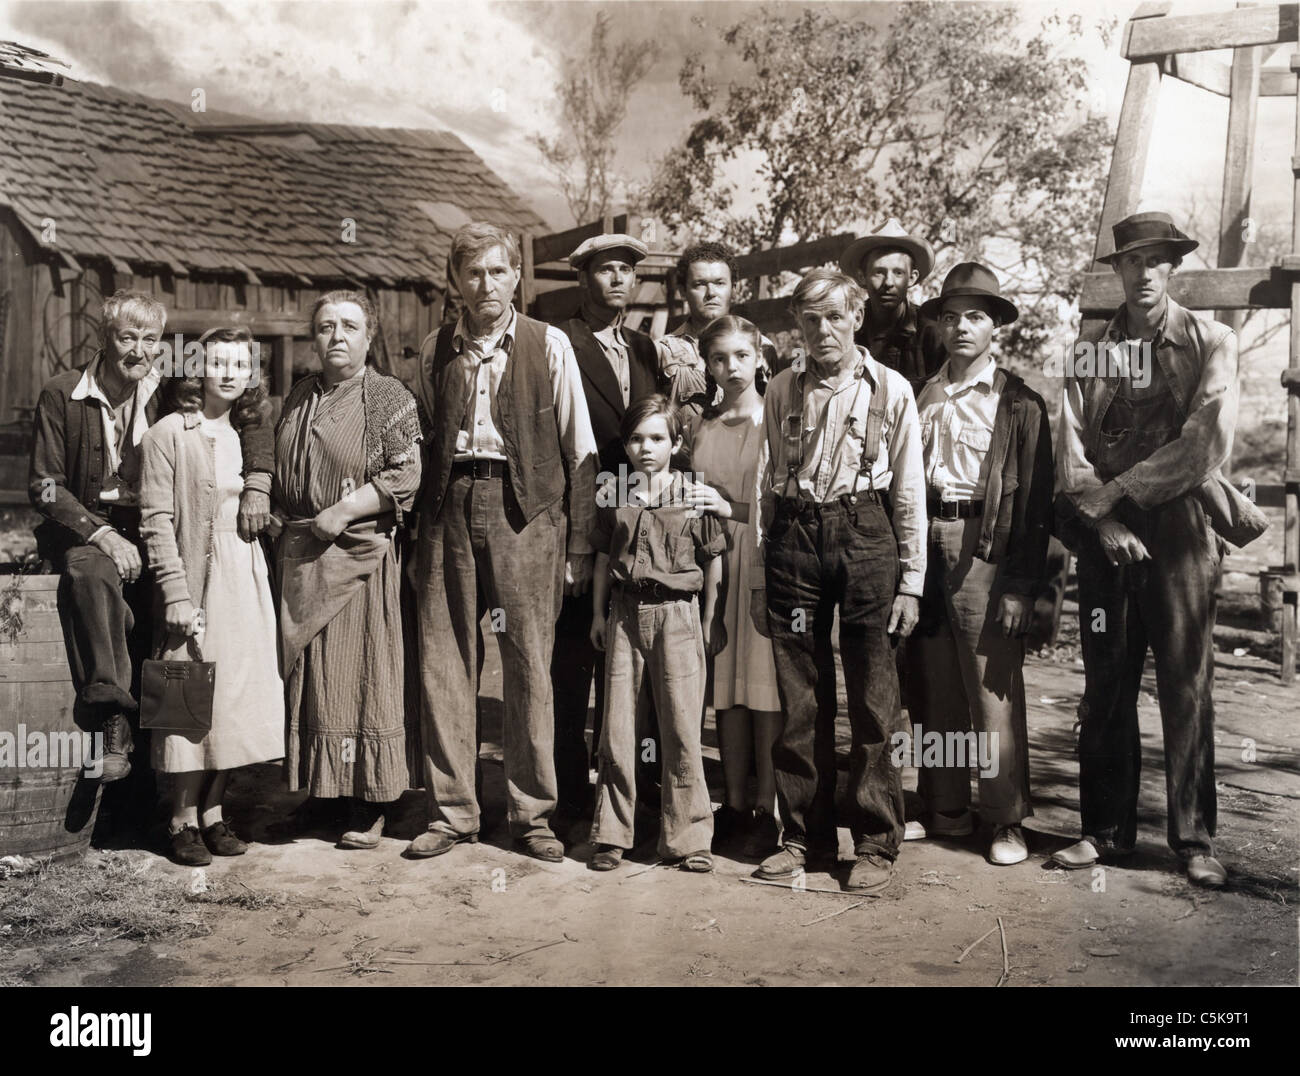 The Grapes of Wrath  Year: 1940 USA Director: John Ford Charley Grapewin, Dorris Bowdon,Jane Darwell, Russell Simpson, - Stock Image